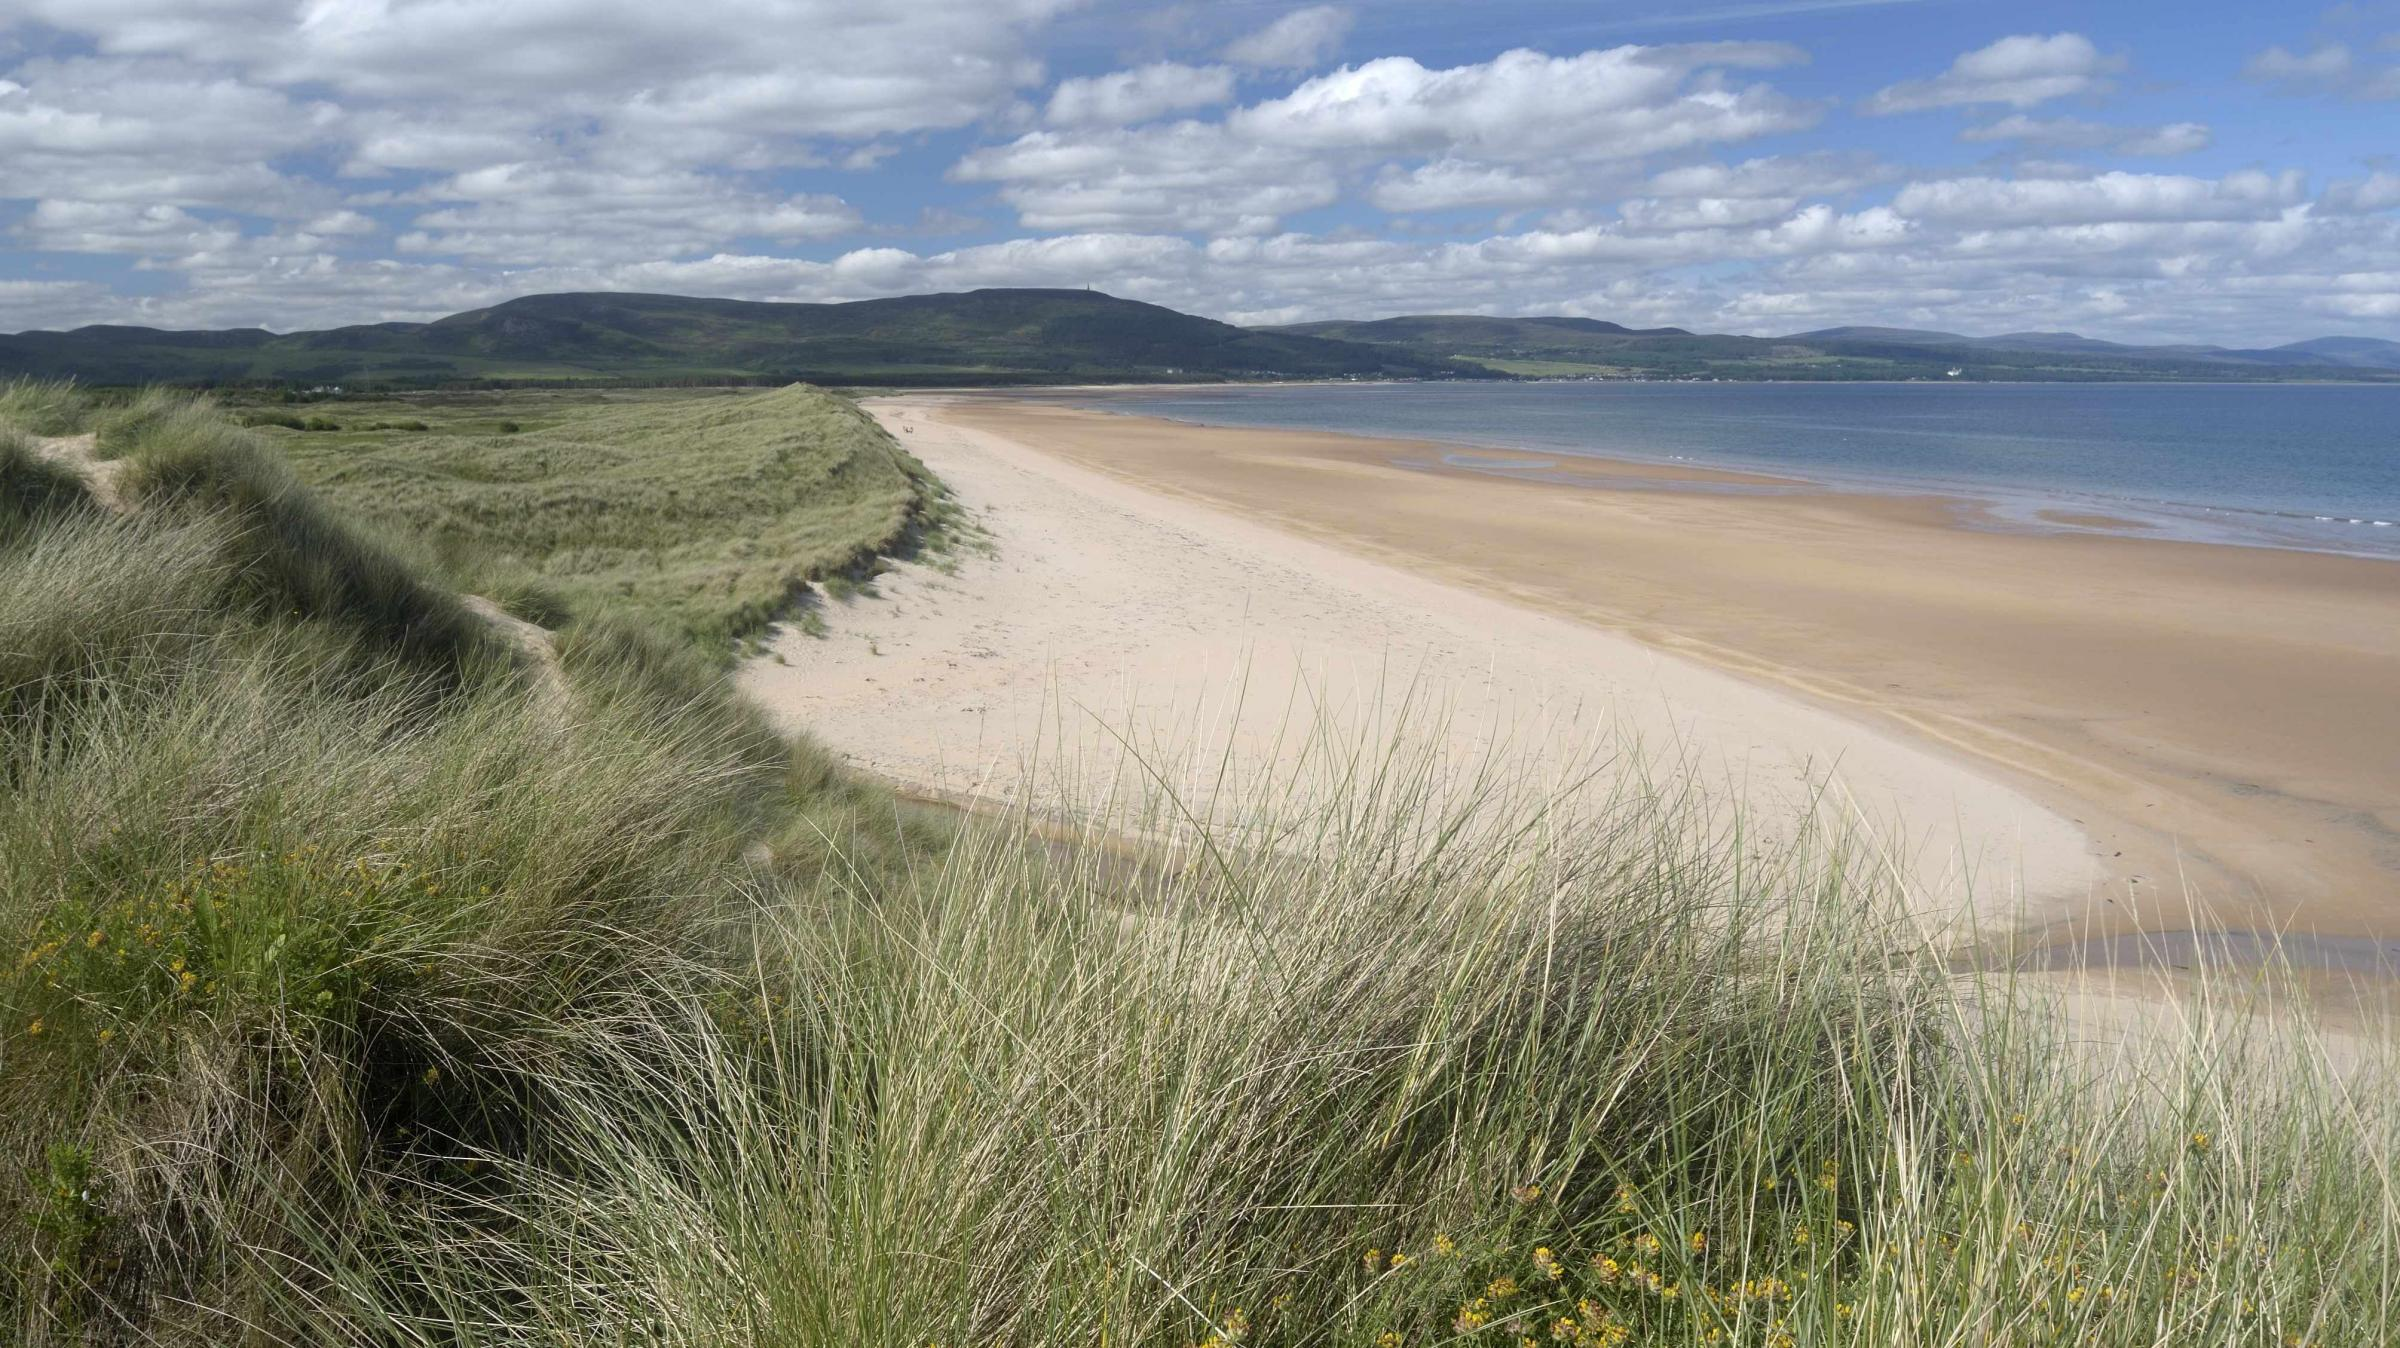 The meeting will discuss the controversial plan for a golf course on the sand dunes near Embo in Sutherland